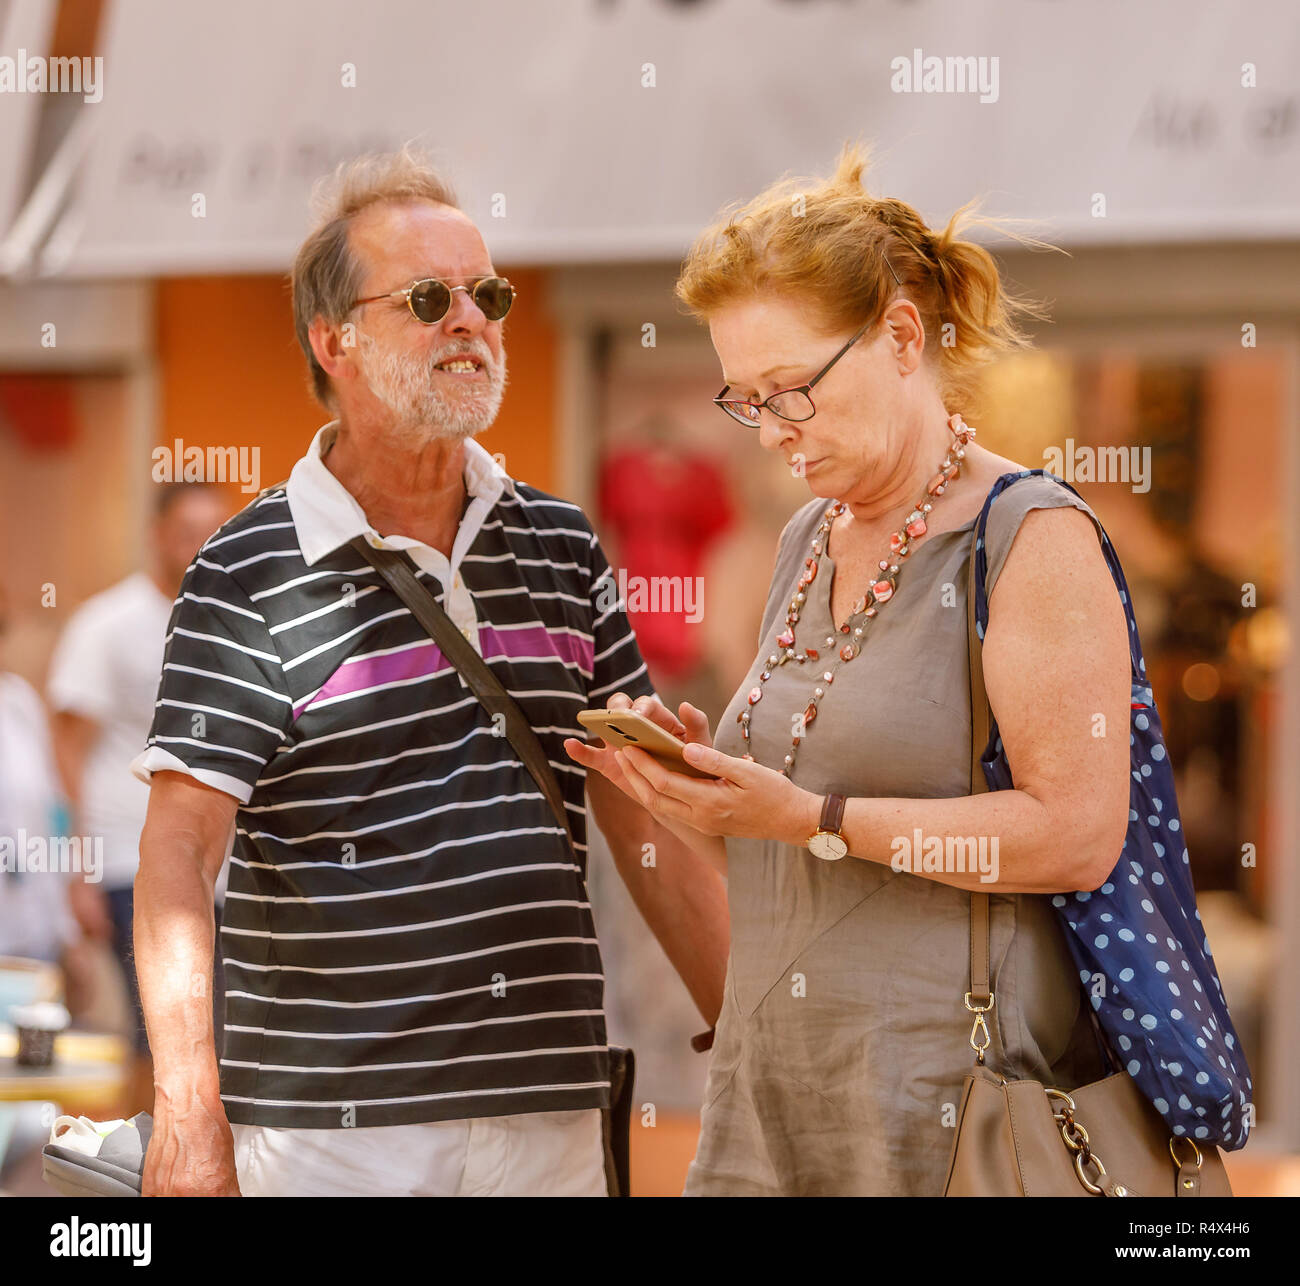 Tourist couple searching their way on mobile phone - Stock Image